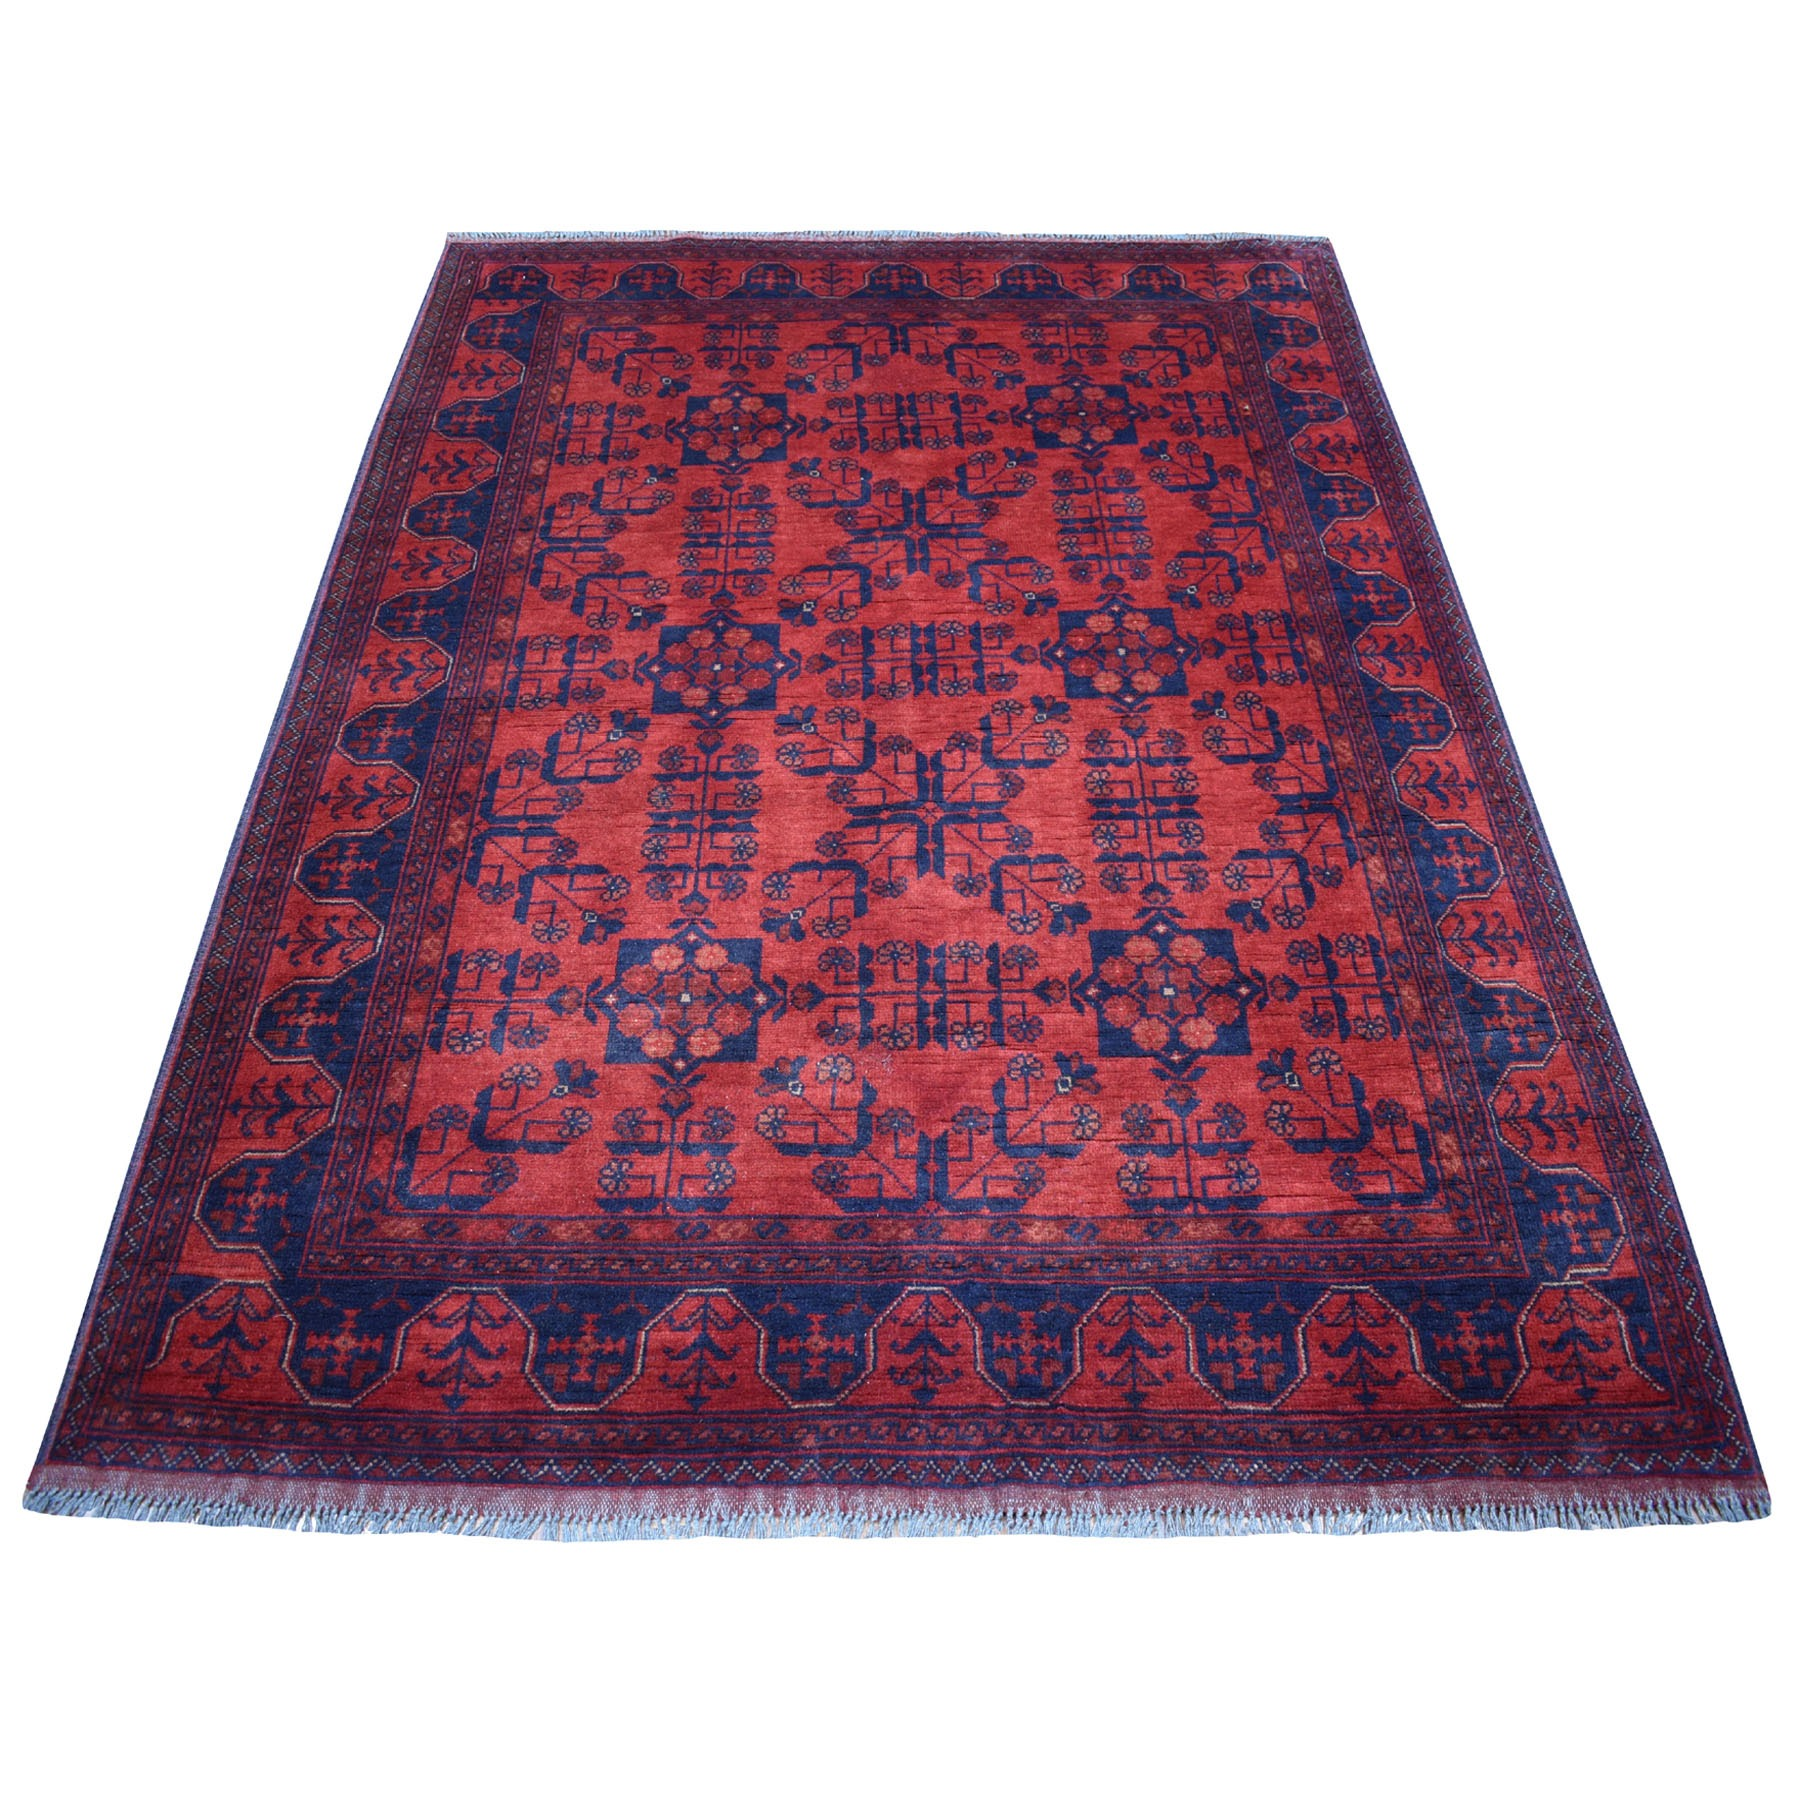 "4'10""X6'4"" Deep And Saturated Red Geometric Afghan Andkhoy Pure Wool Hand Knotted Oriental Rug moaece6a"